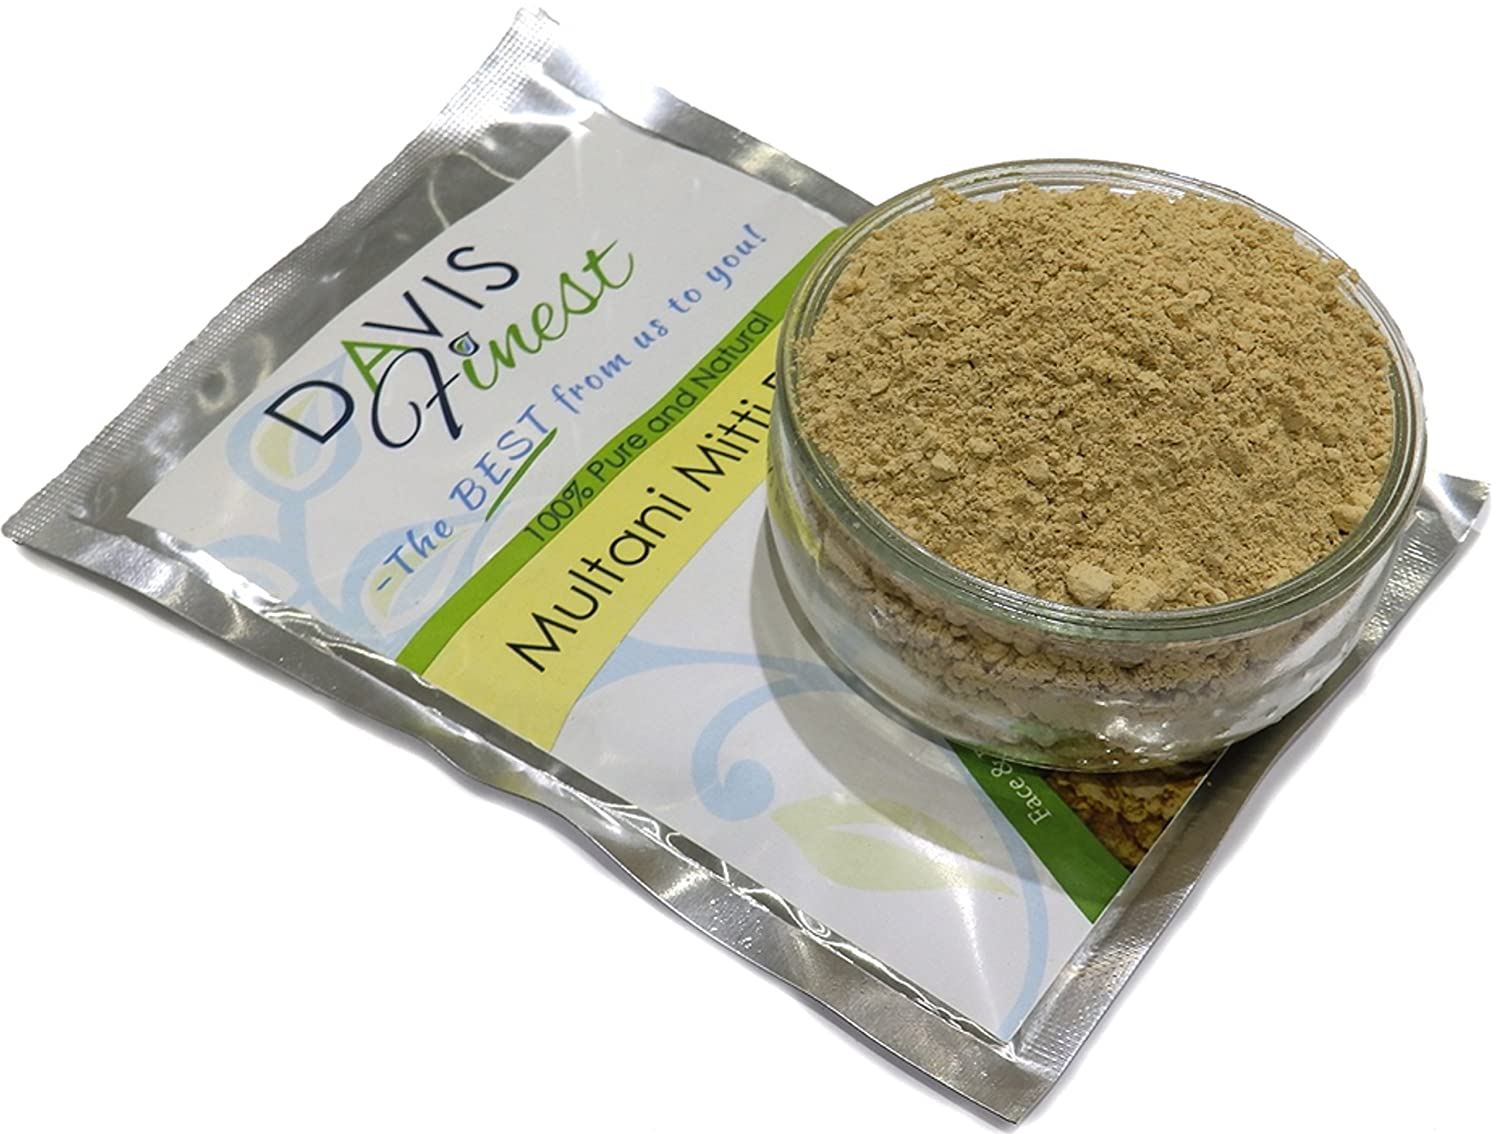 Davis Finest Multani Mitti Powder - Pure Natural Fullers Earth Bentonite Indian Healing Clay Mask for Skincare & Haircare - Smooth Skin Brightener Complexion Rescue (100g) DFSHHP0003